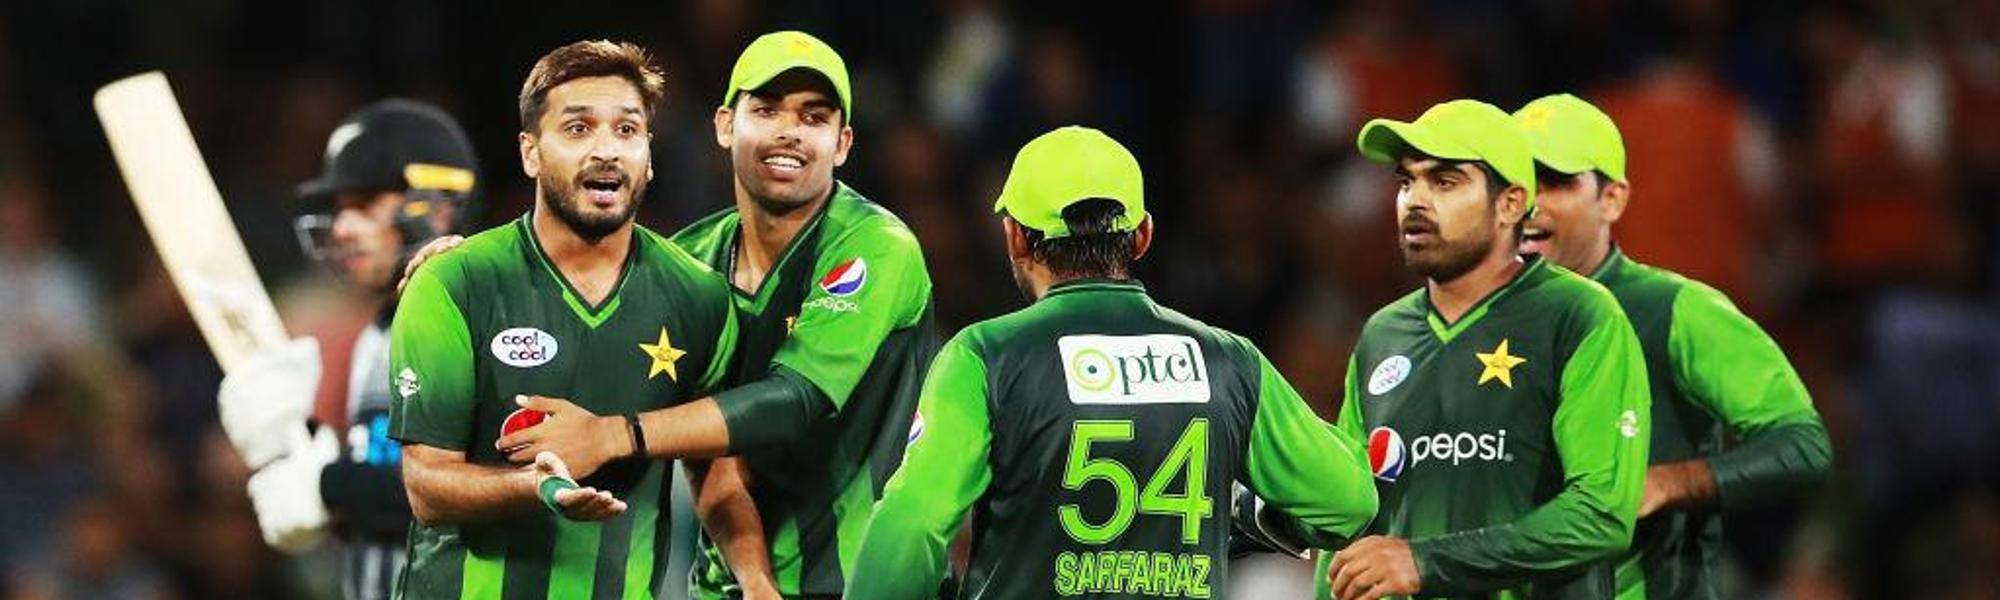 Rumman Raees celebrates after dismissing Tom Bruce during game three of the T20I match between New Zealand and Pakistan, 28 January, 2018.